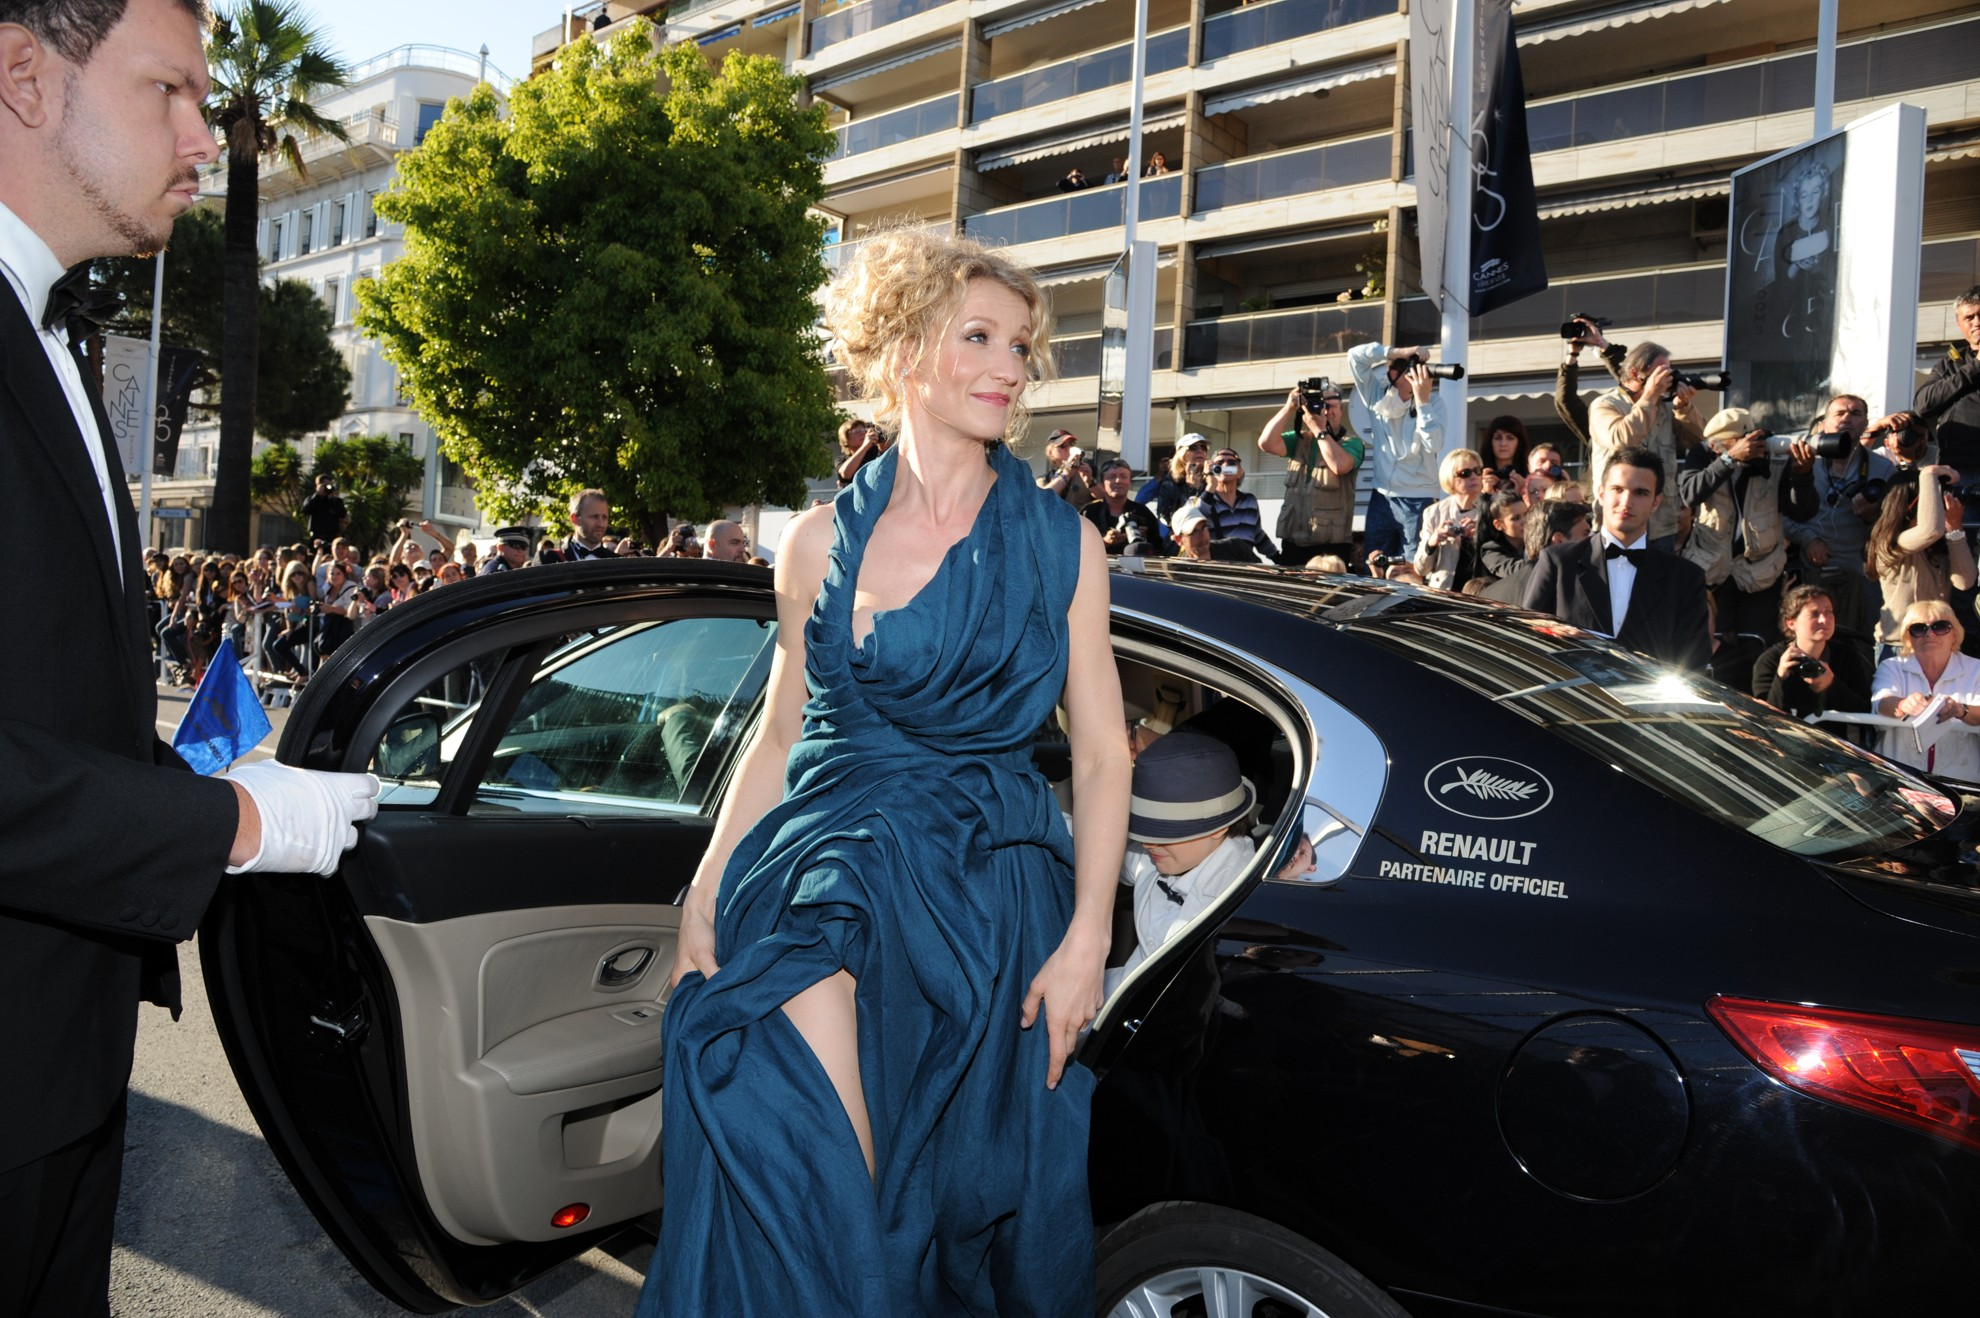 Renault Cannes Film Festival